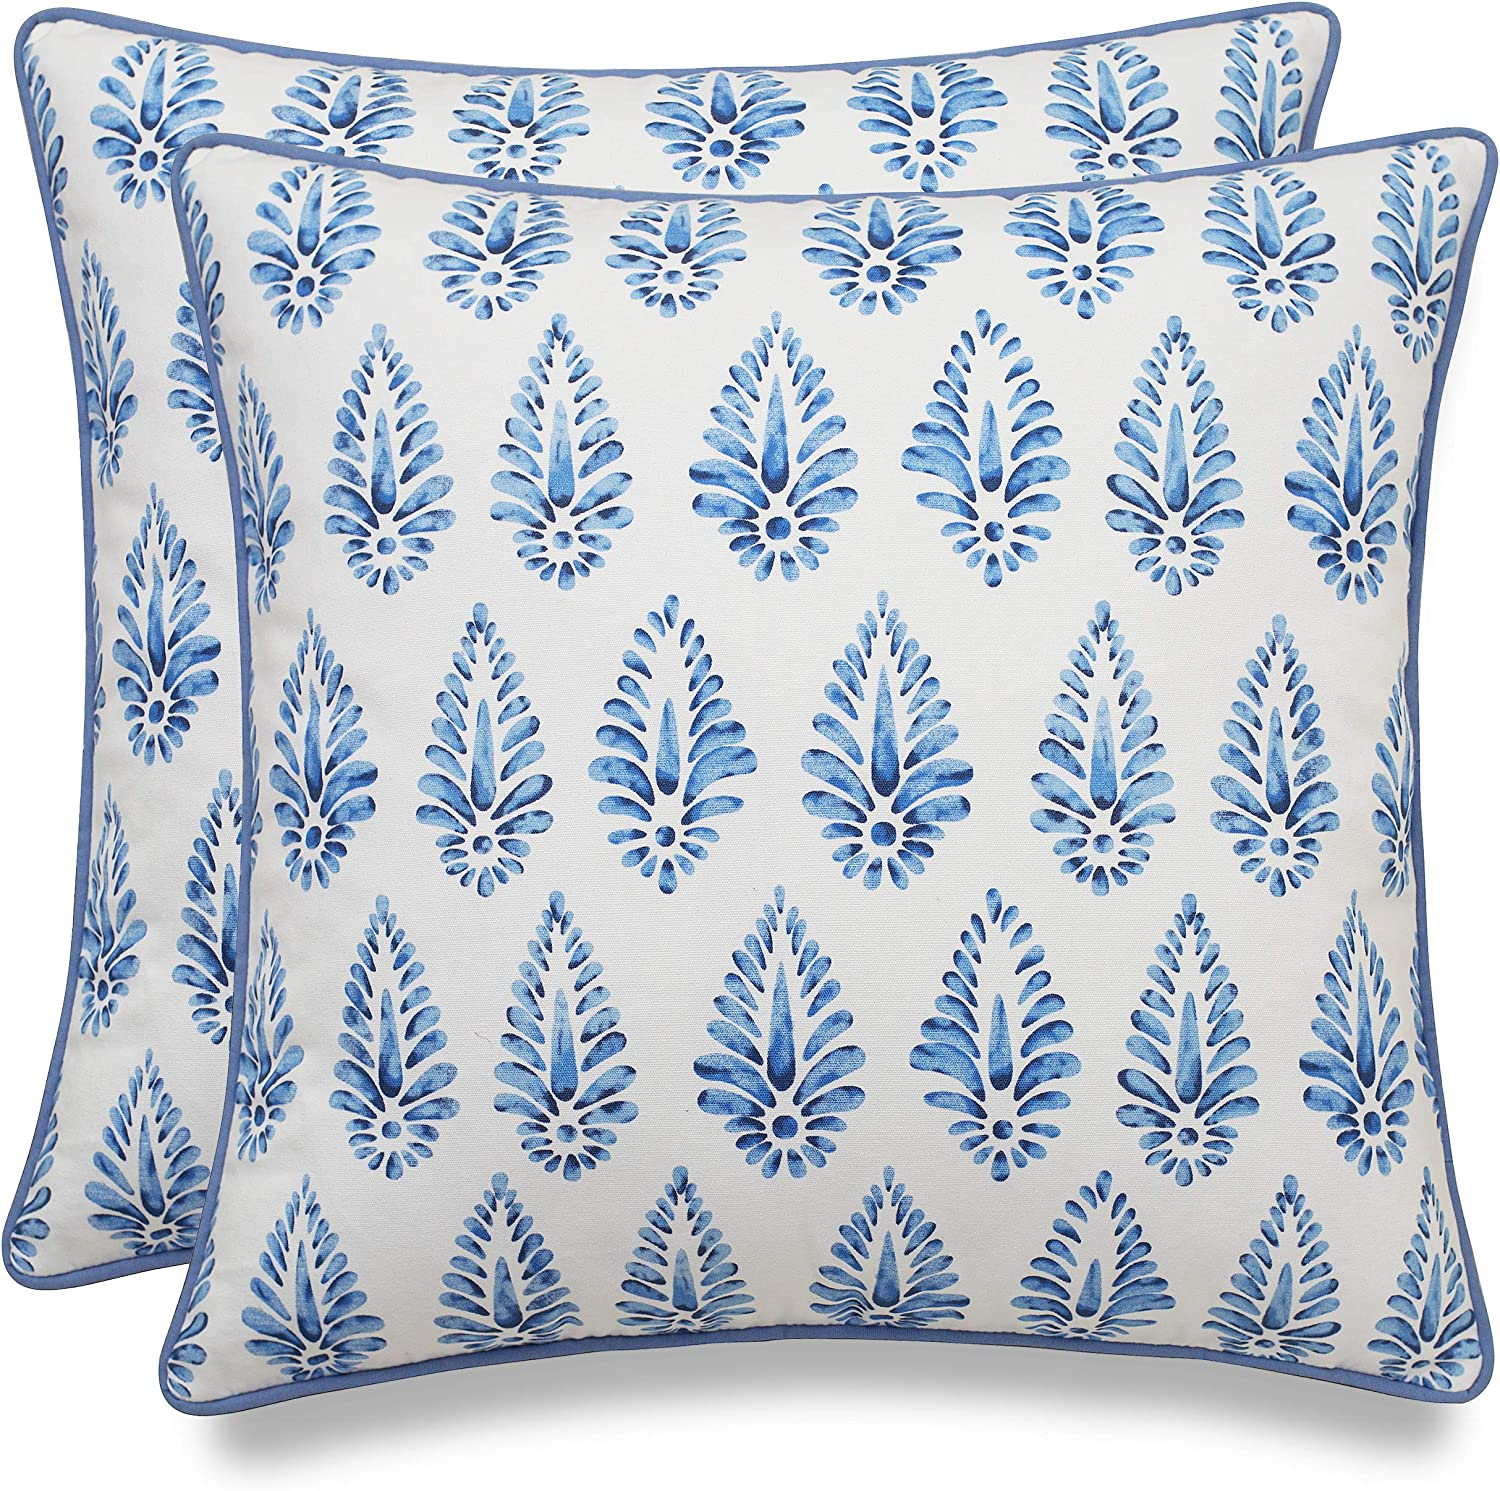 MANOJAVAYA Set of 2 Pcs Printed Booti Decorative Square Accent Throw Pillow Cover - Home Decor for Couch, Sofa, Chair - 18x18, Blue